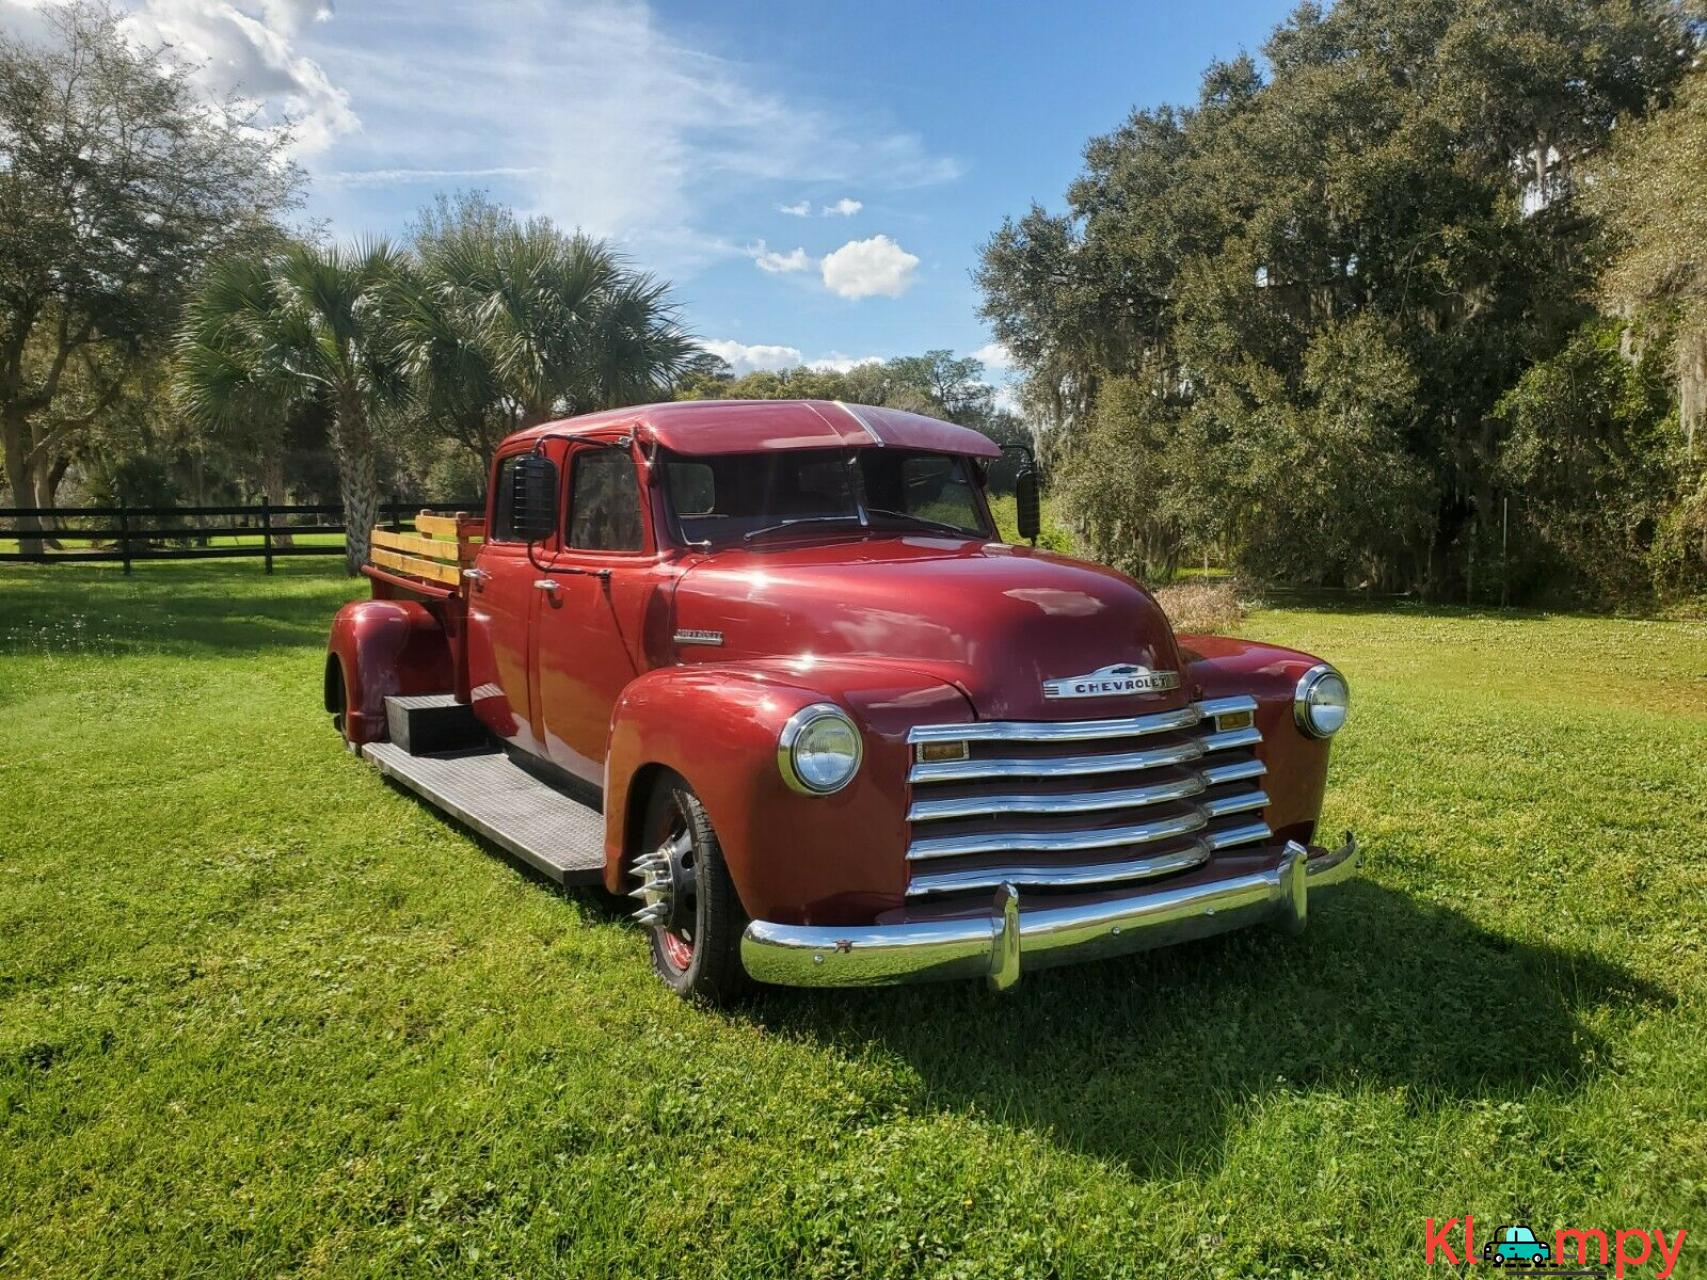 1949 Chevrolet Other Crewcab Diesel Dually - 10/14